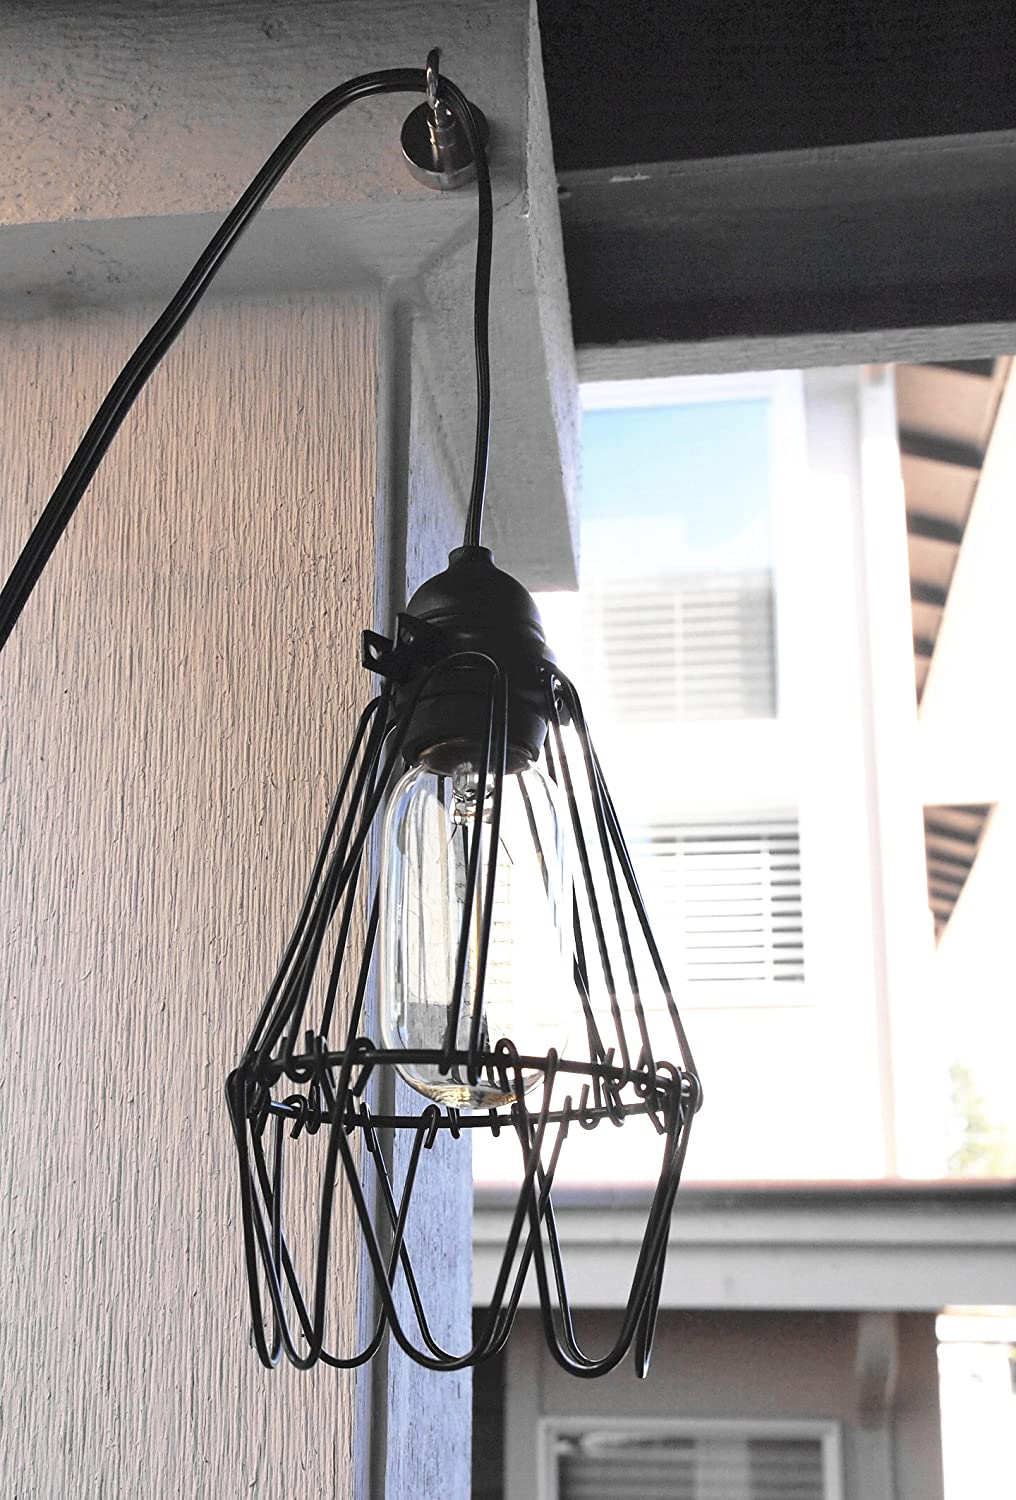 Industrial Metal Bird Cage Lamp Guard String Light Shade Open Close ...